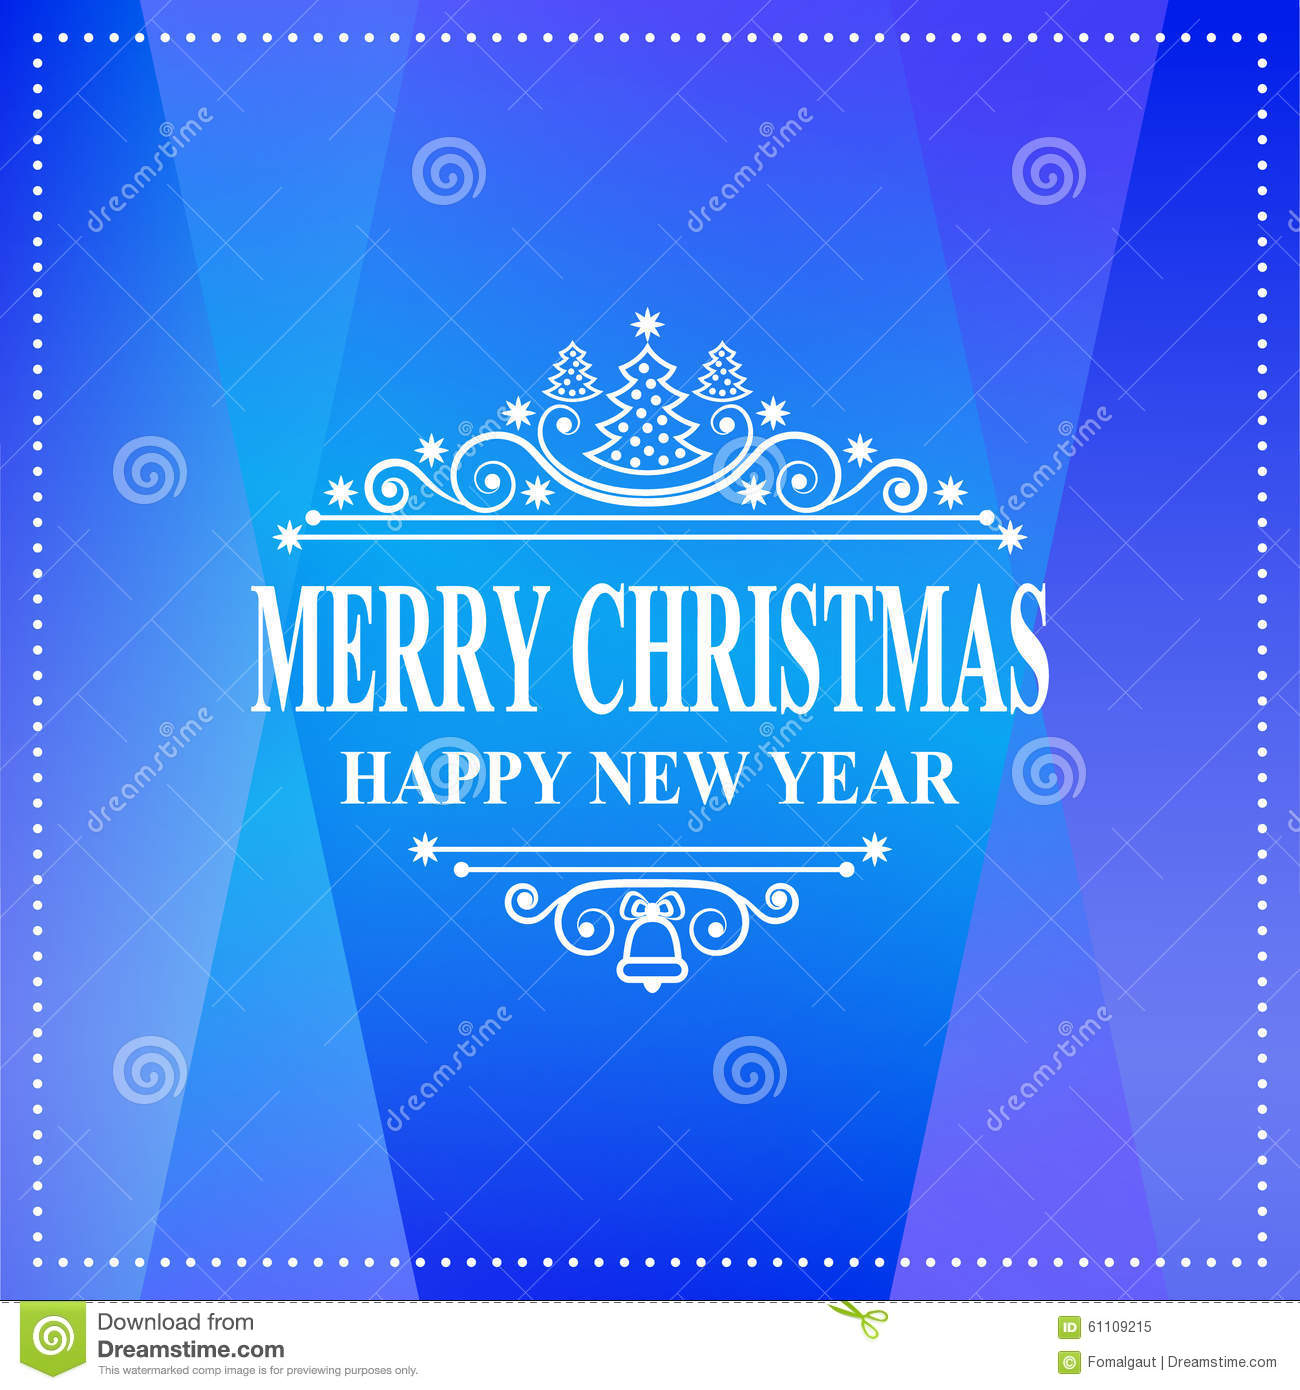 Happy new year message merry christmas holidays wish greeting card download happy new year message merry christmas holidays wish greeting card invitation m4hsunfo